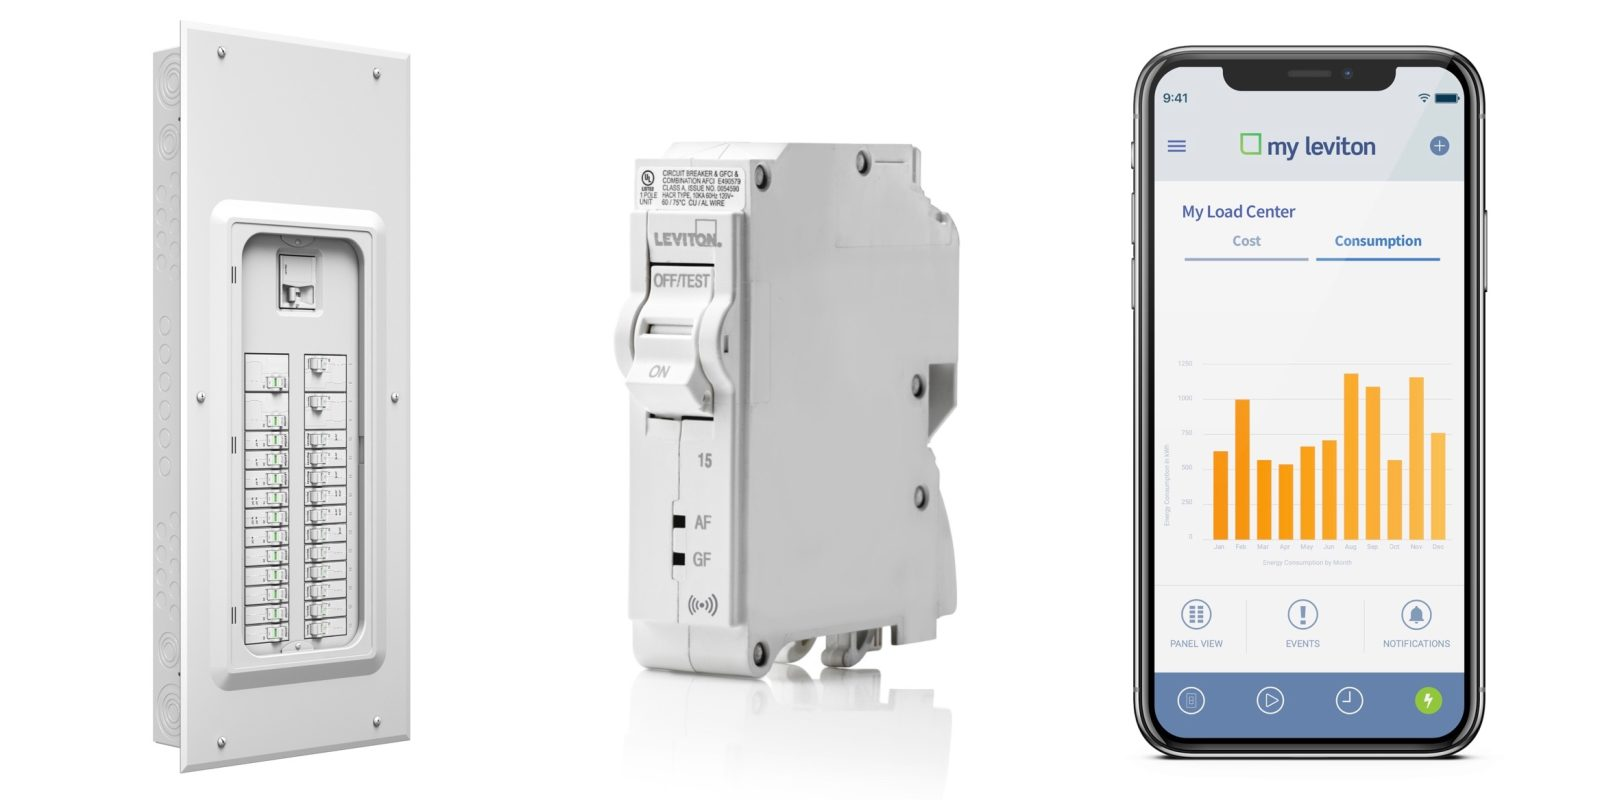 leviton launches smart load center with ios app control for